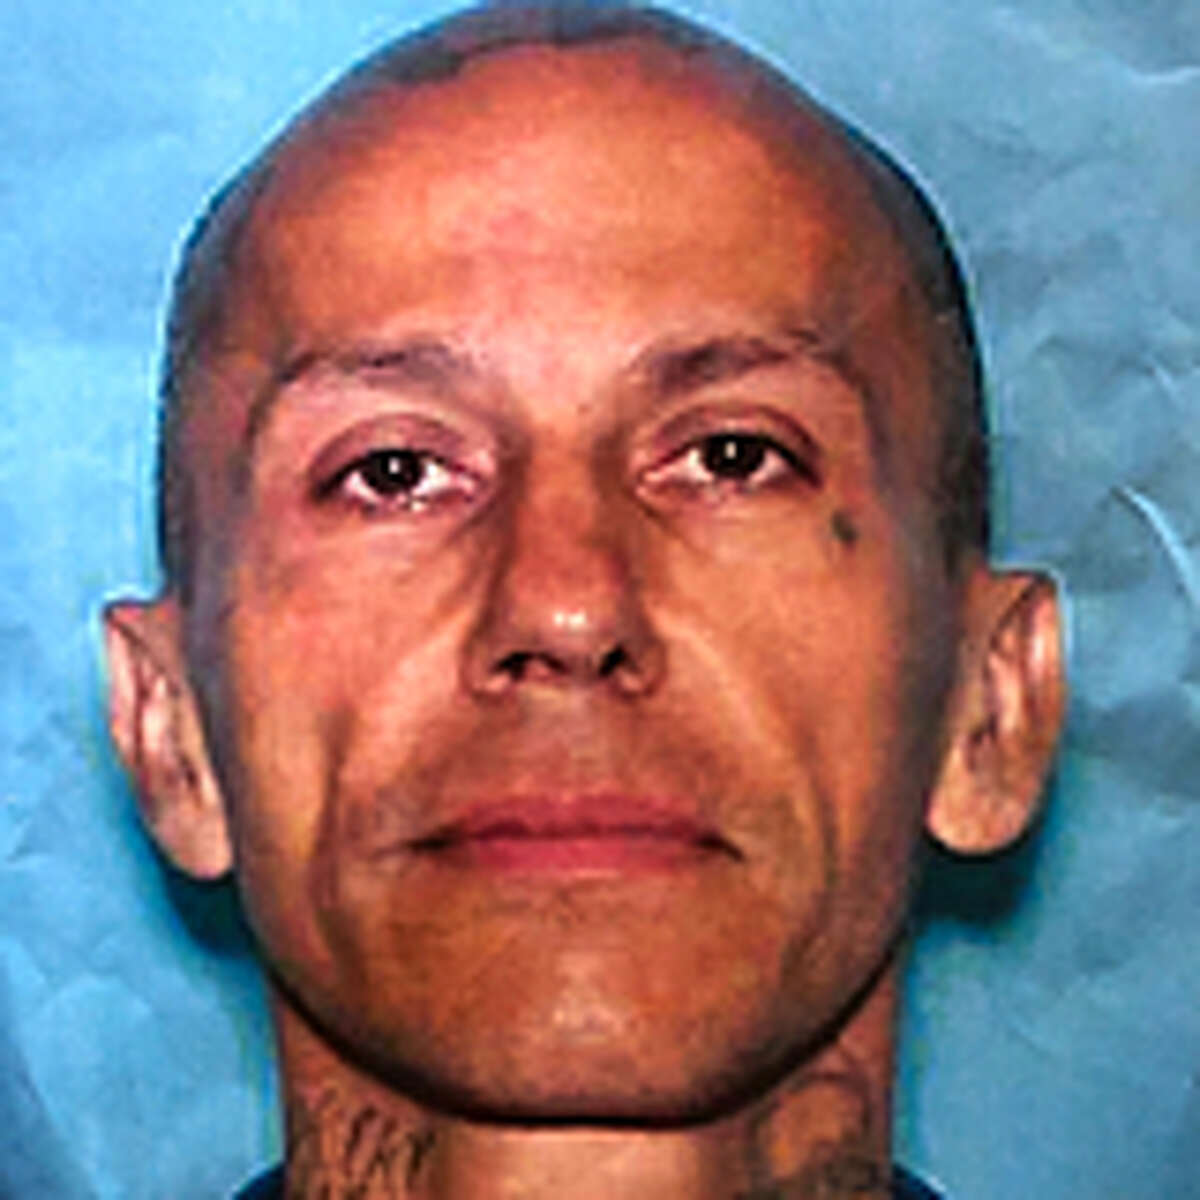 Police are looking for Jose Gilberto Rodriguez, 46, who may be driving a gray Nissan Sentra with the license plate KPD2805.